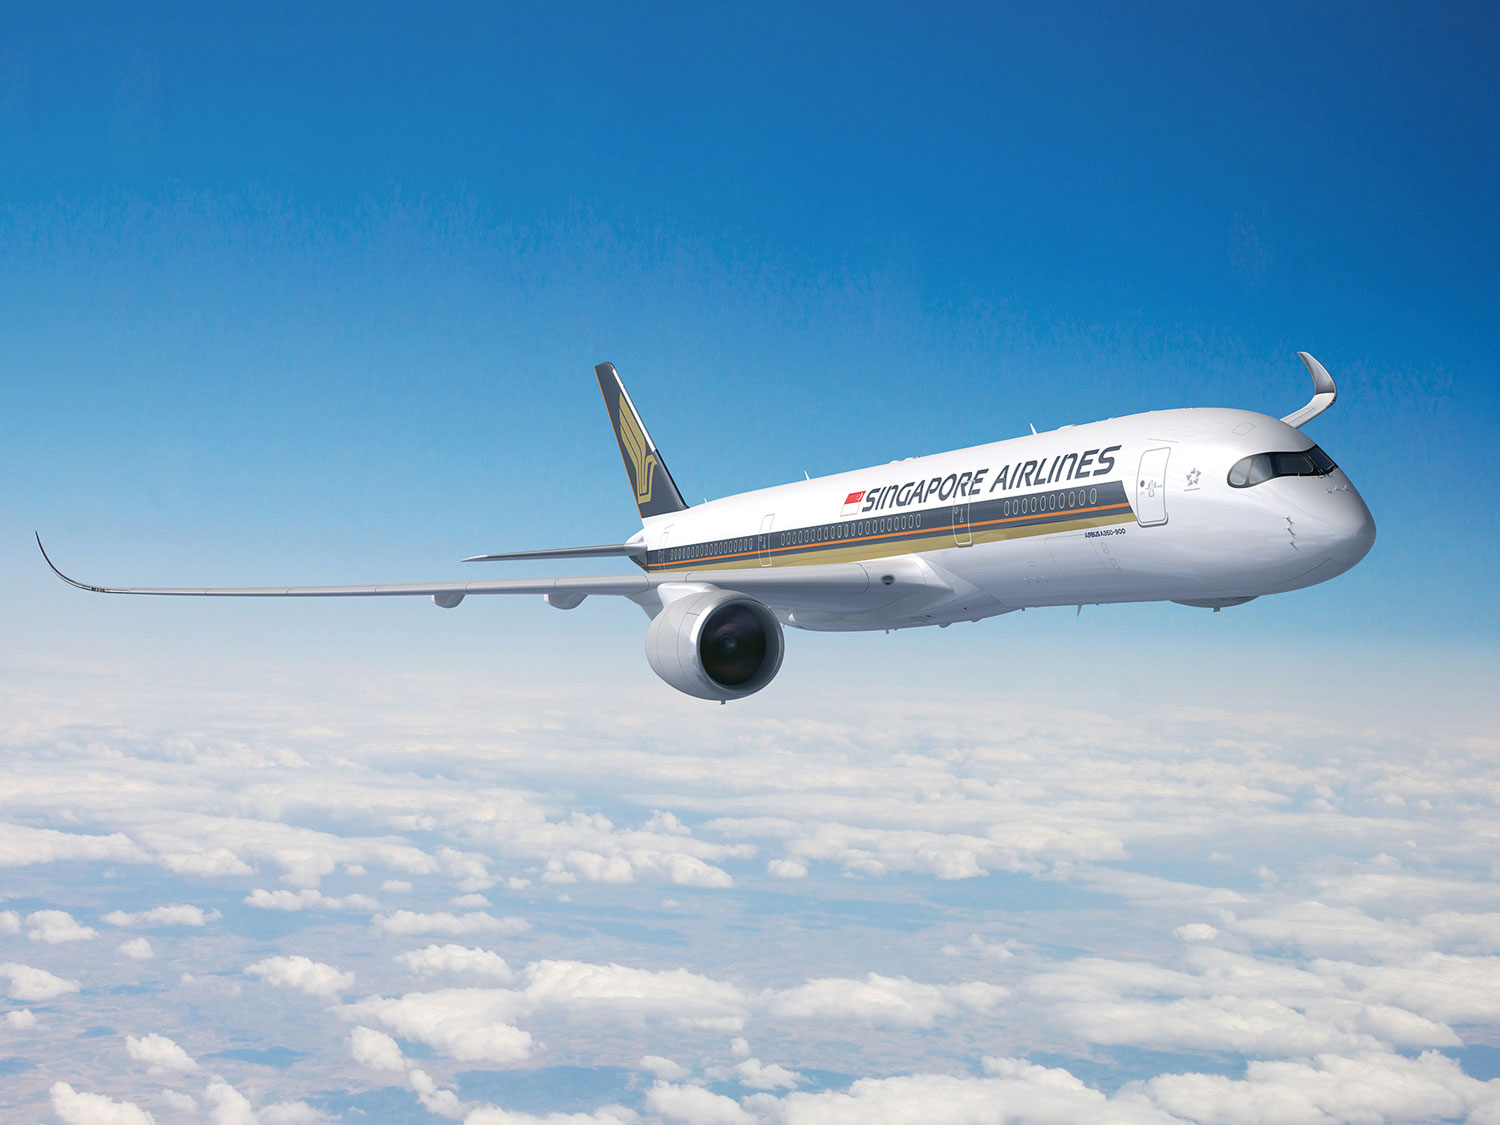 Singapore Airlines: Experience The Heart of The World's Longest Flights